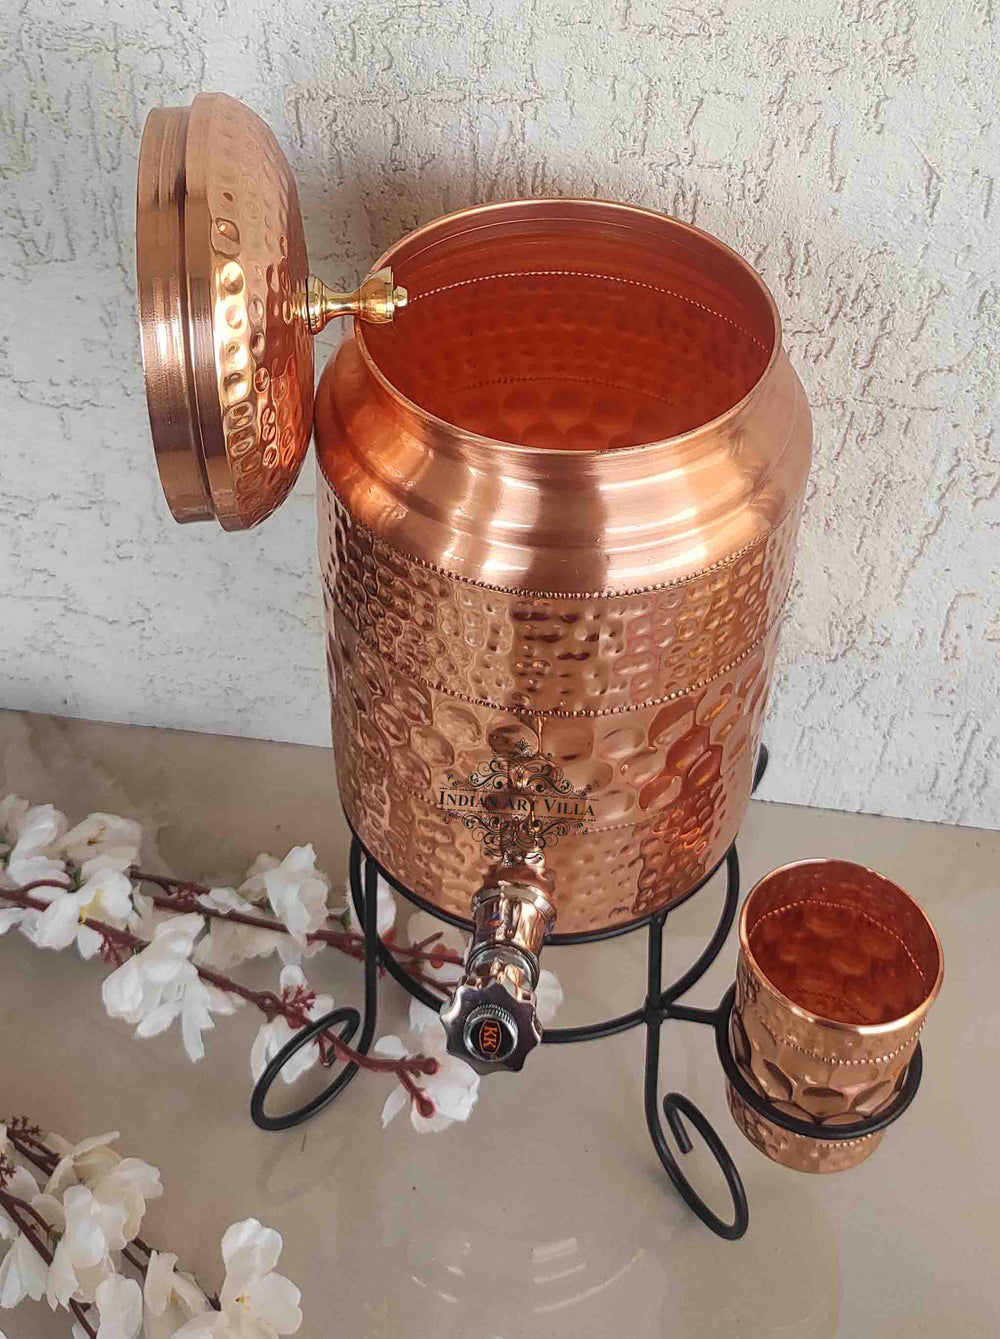 One should make it a habit of drinking water stored in copper utensils so as to keep themselves healthy.